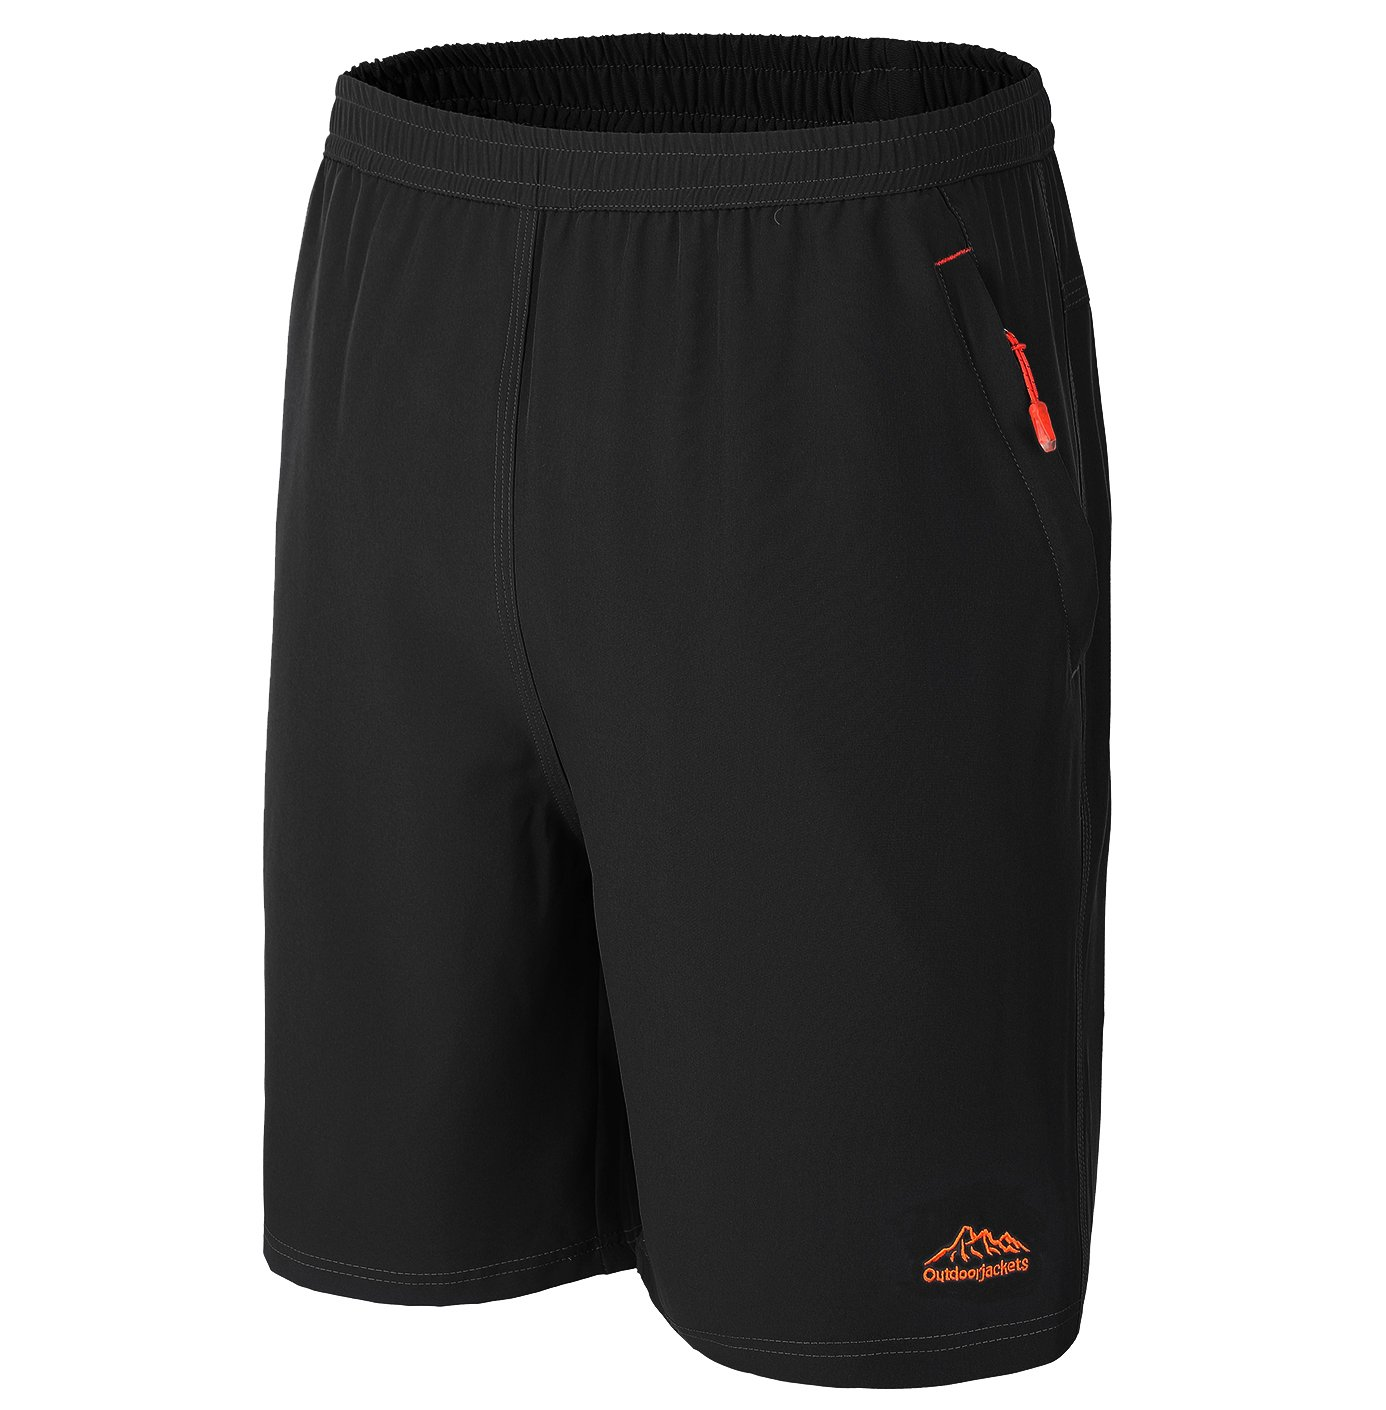 Shorts for Men Athletic with Pockets Long Sport, Black 2XL